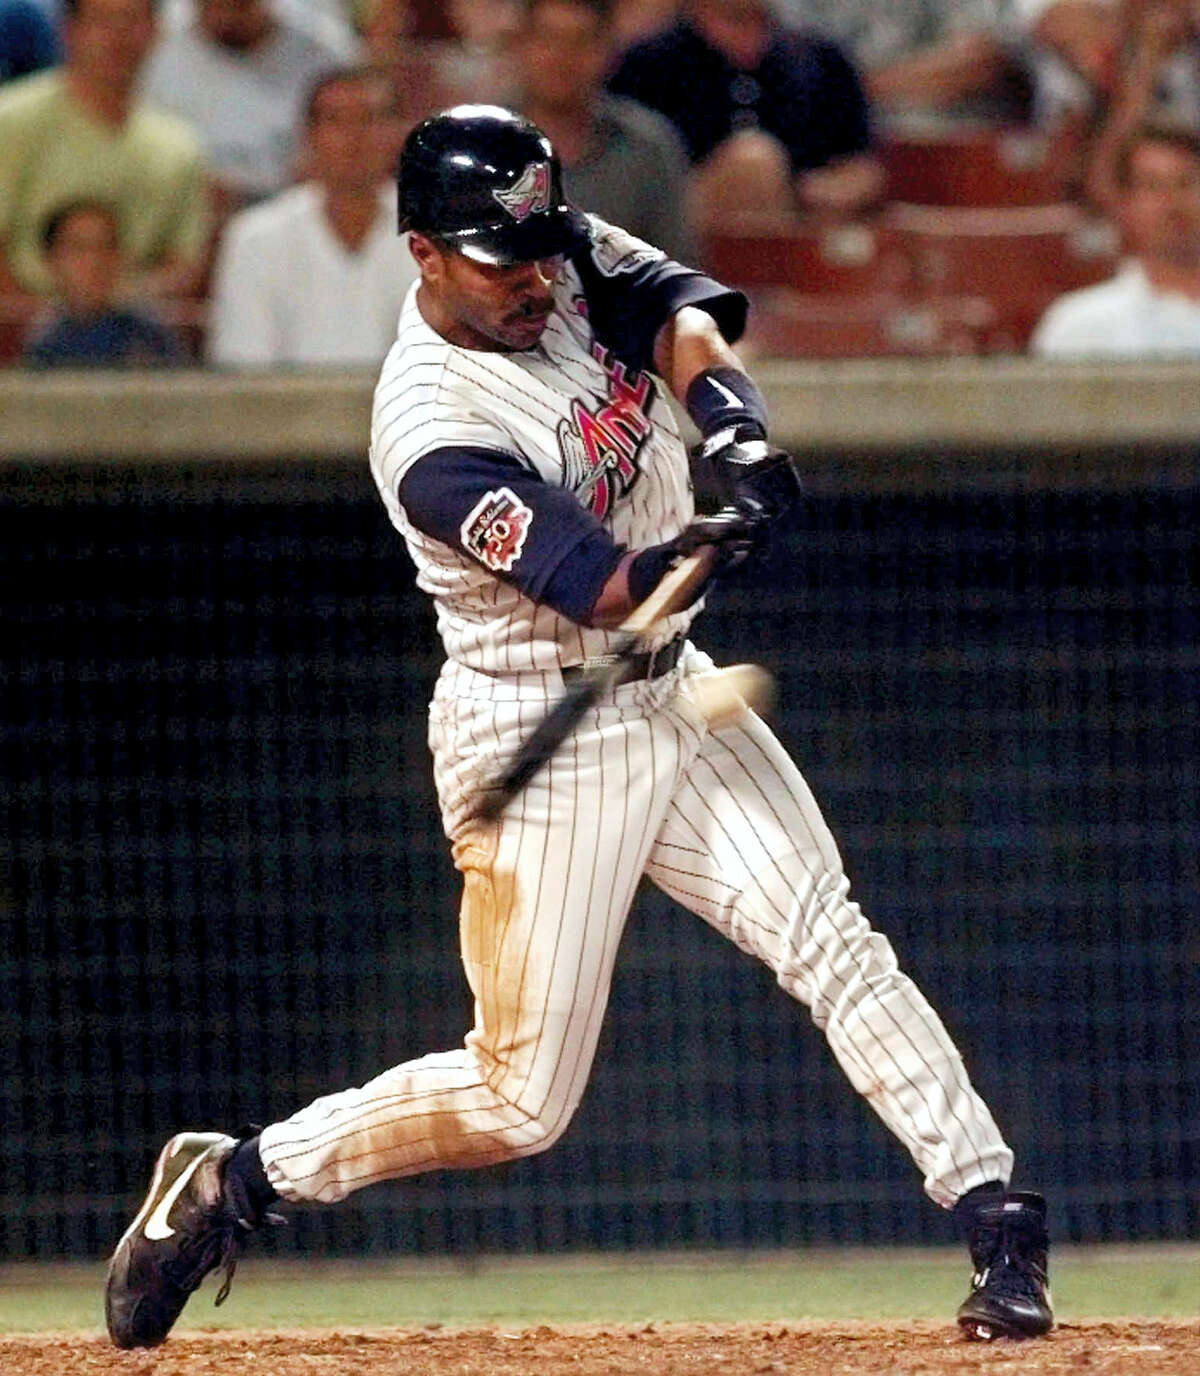 Tony Phillips, an infielder and outfielder who made the final defensive play in the Oakland Athletics' sweep of the Giants during the earthquake-interrupted 1989 World Series, has died. He was 56.